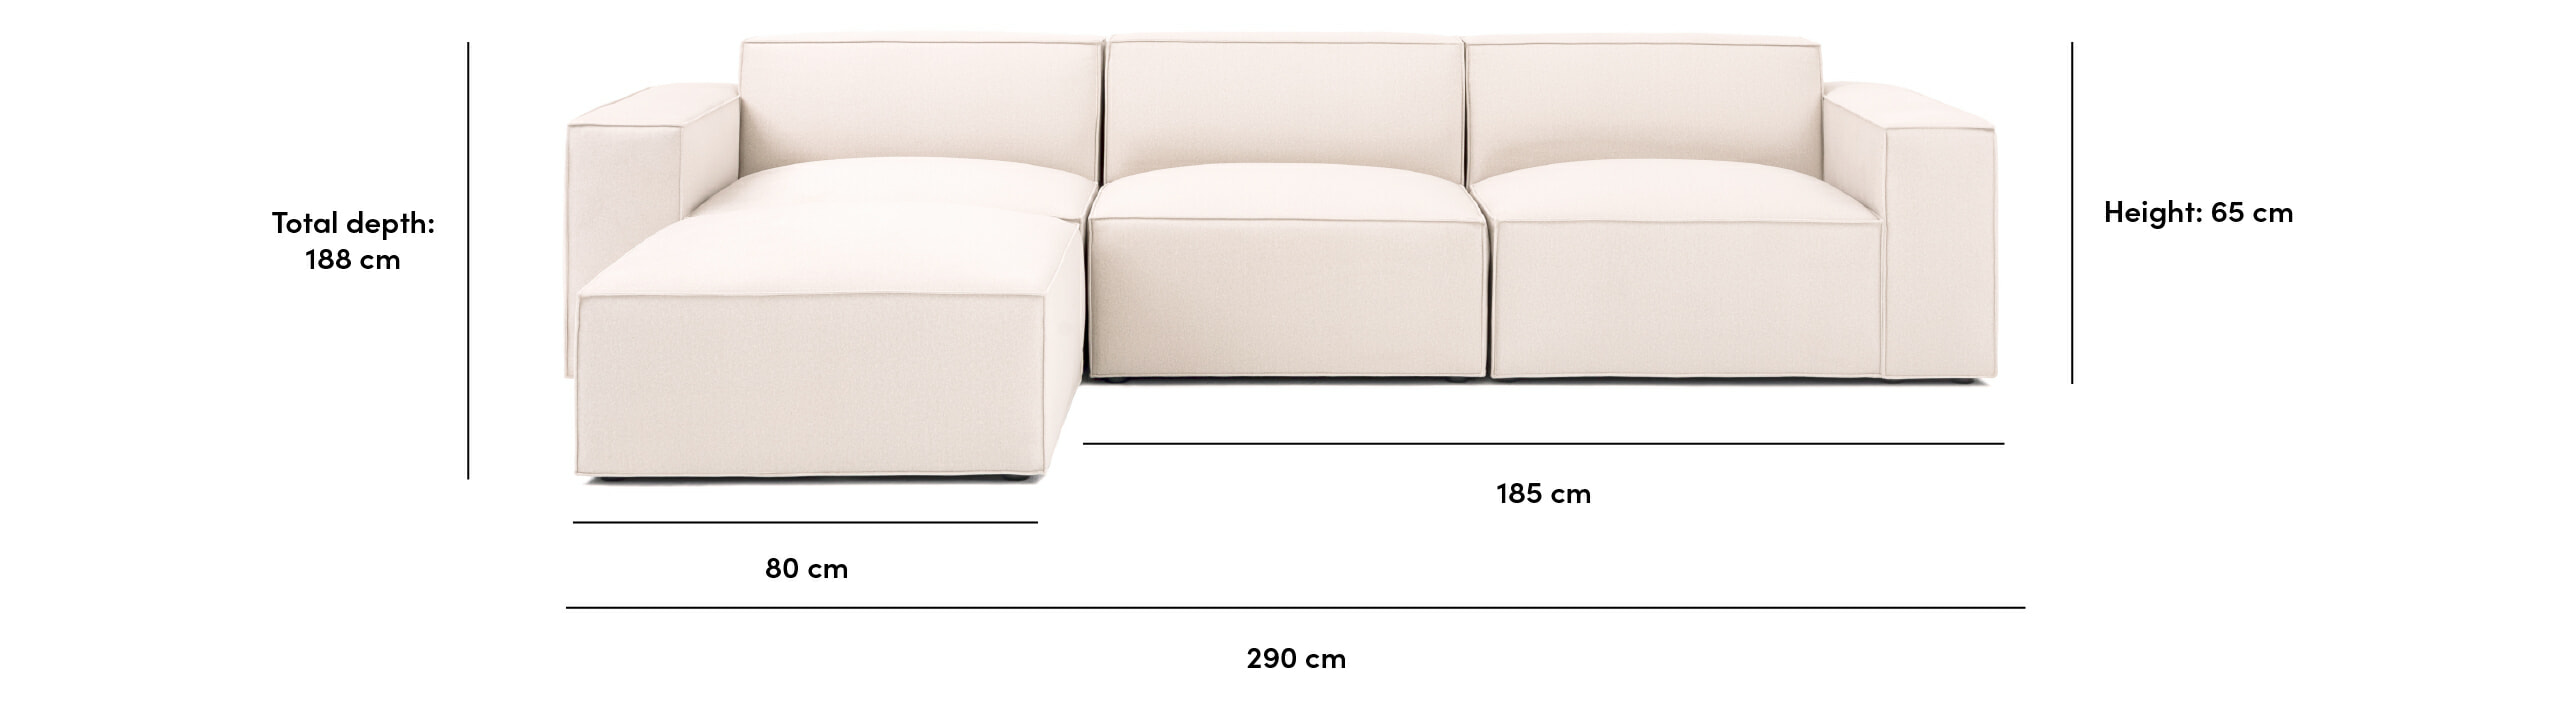 Pacific sectional dimensions